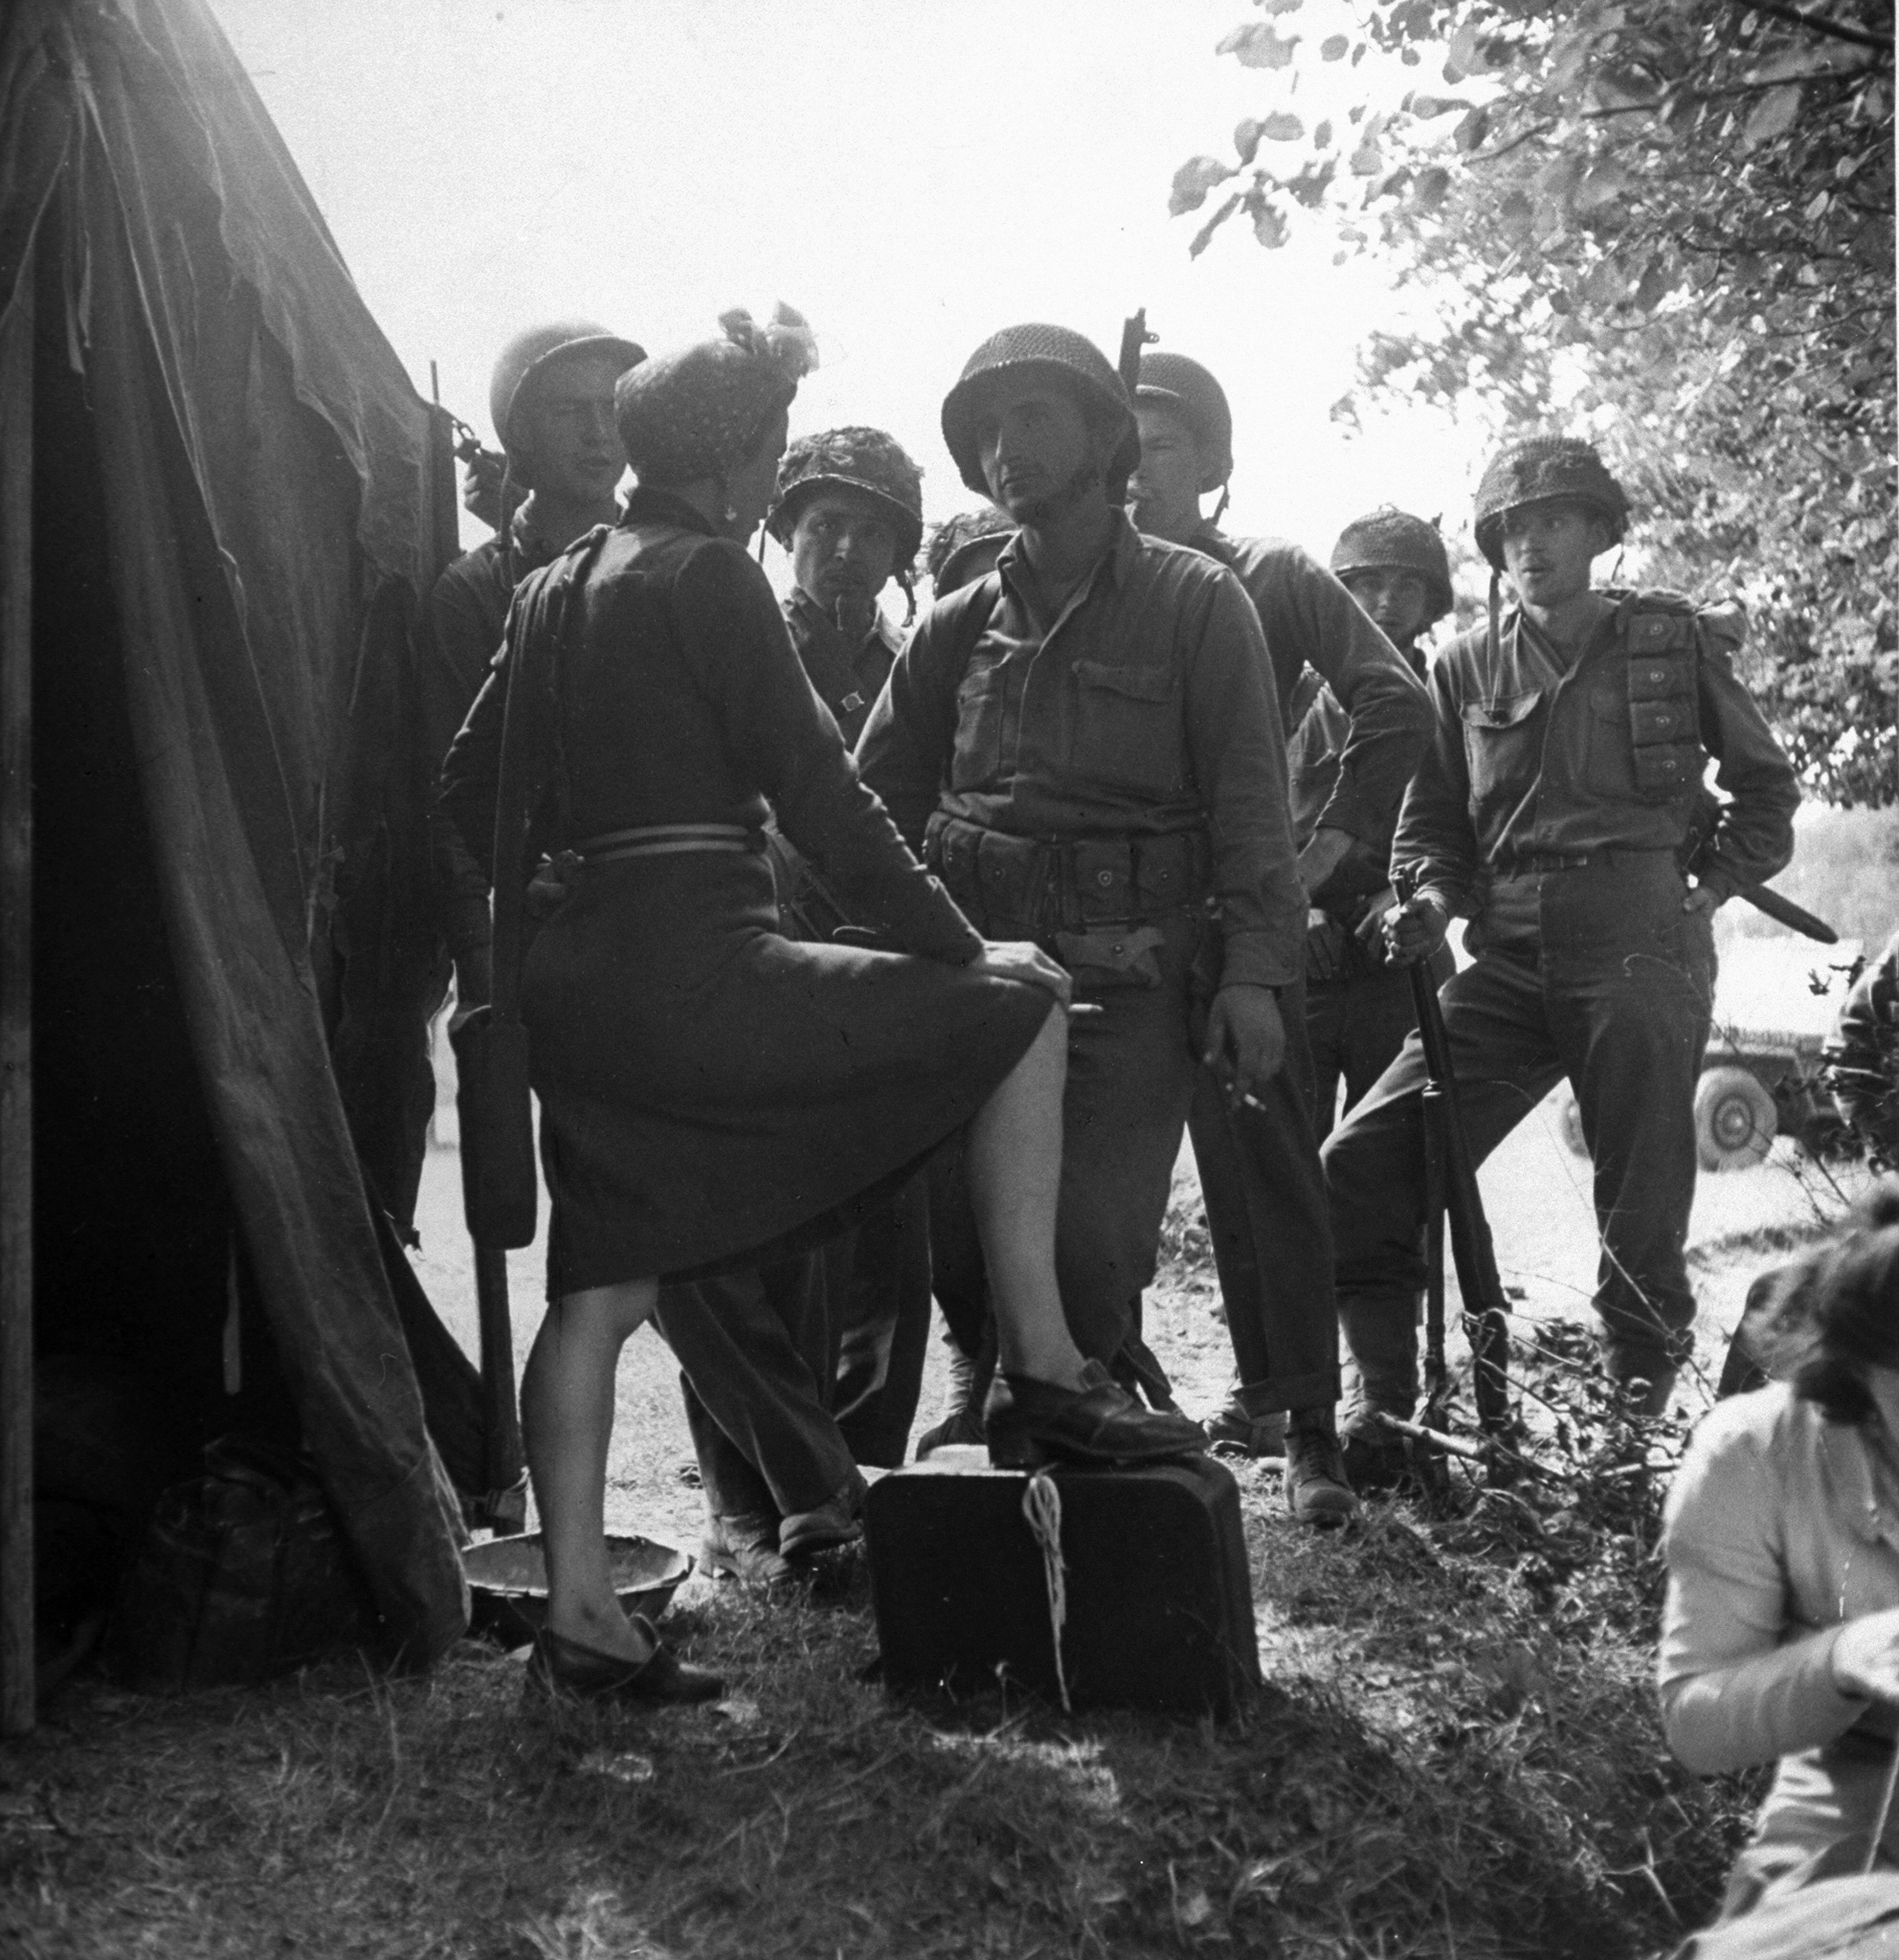 Caption from LIFE:  Stage-door Johnnies talk with French dancer at dressing tent. Most of dancers were Parisians. For soldiers in camp, the show's price of admission was paid by Army Special Services Fund.